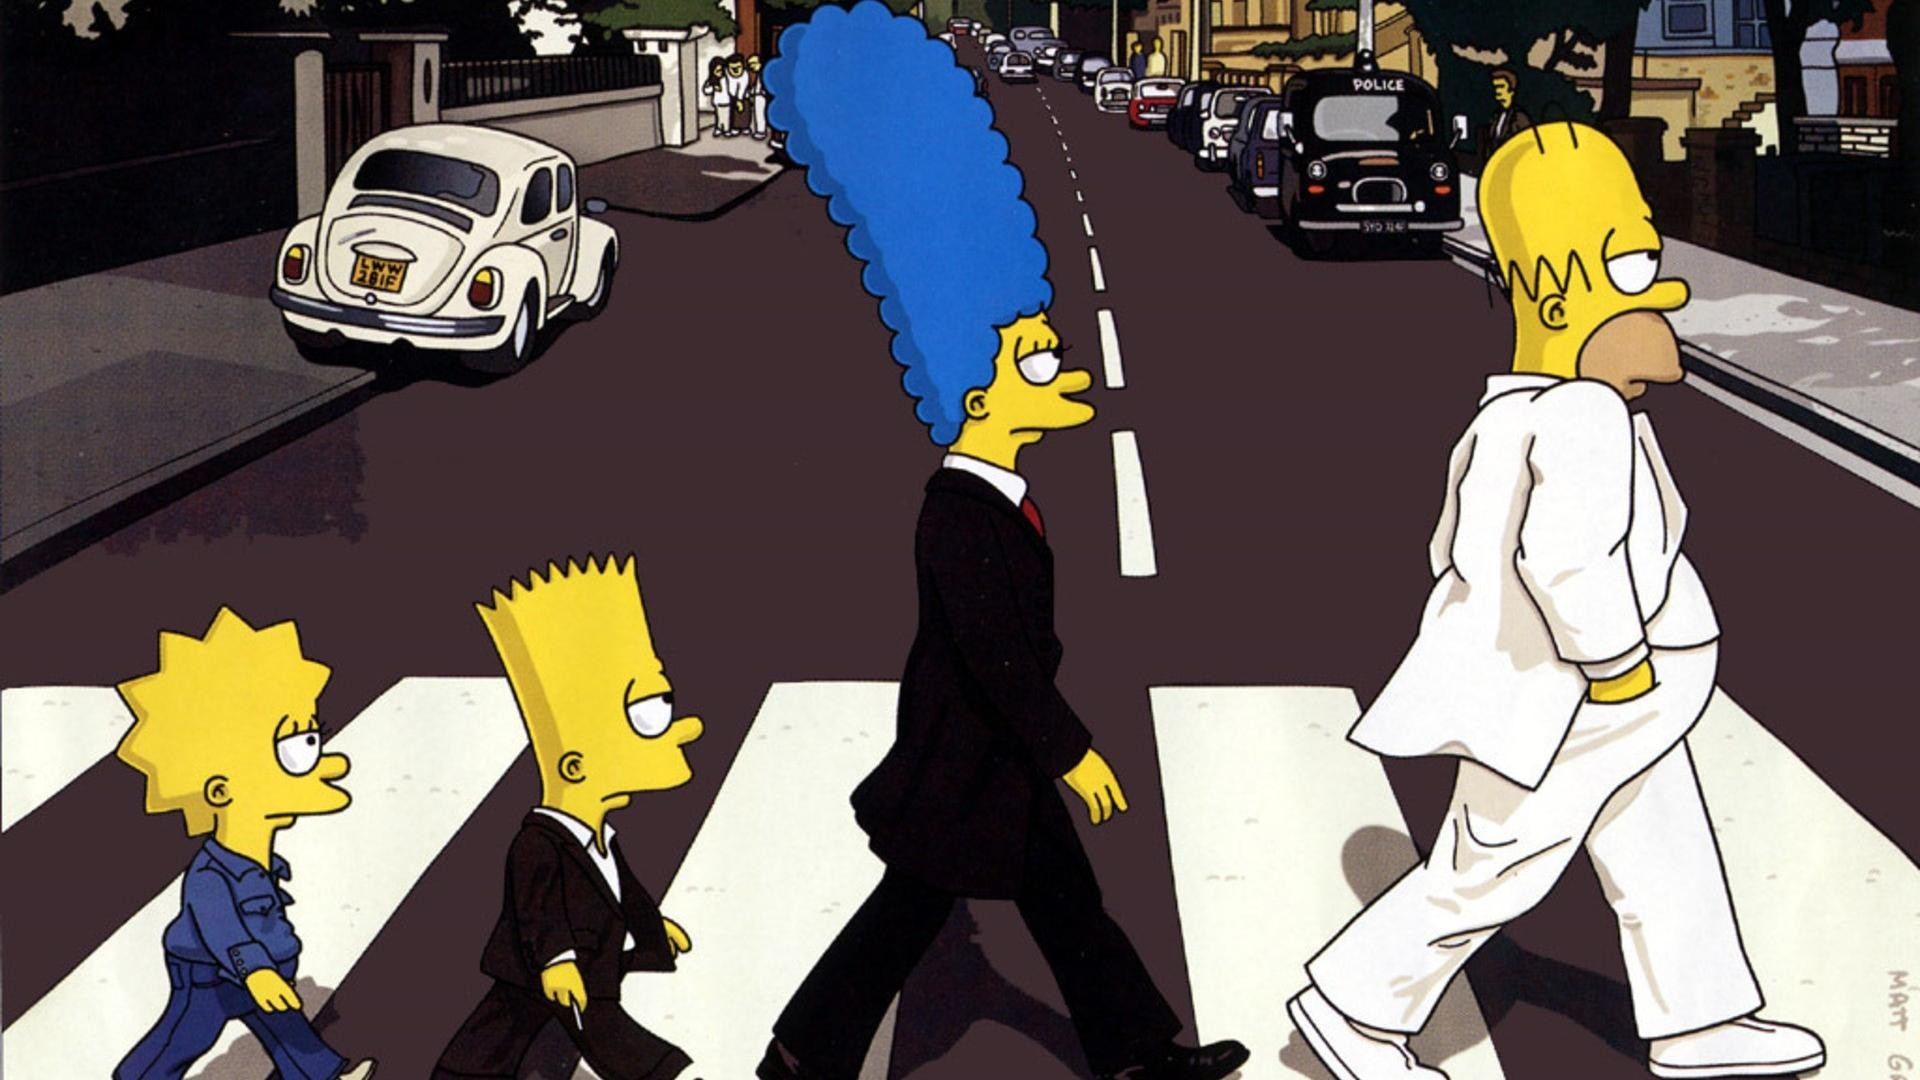 1920x1080 Funny Cartoon Simpsons Pictures HD Wallpaper